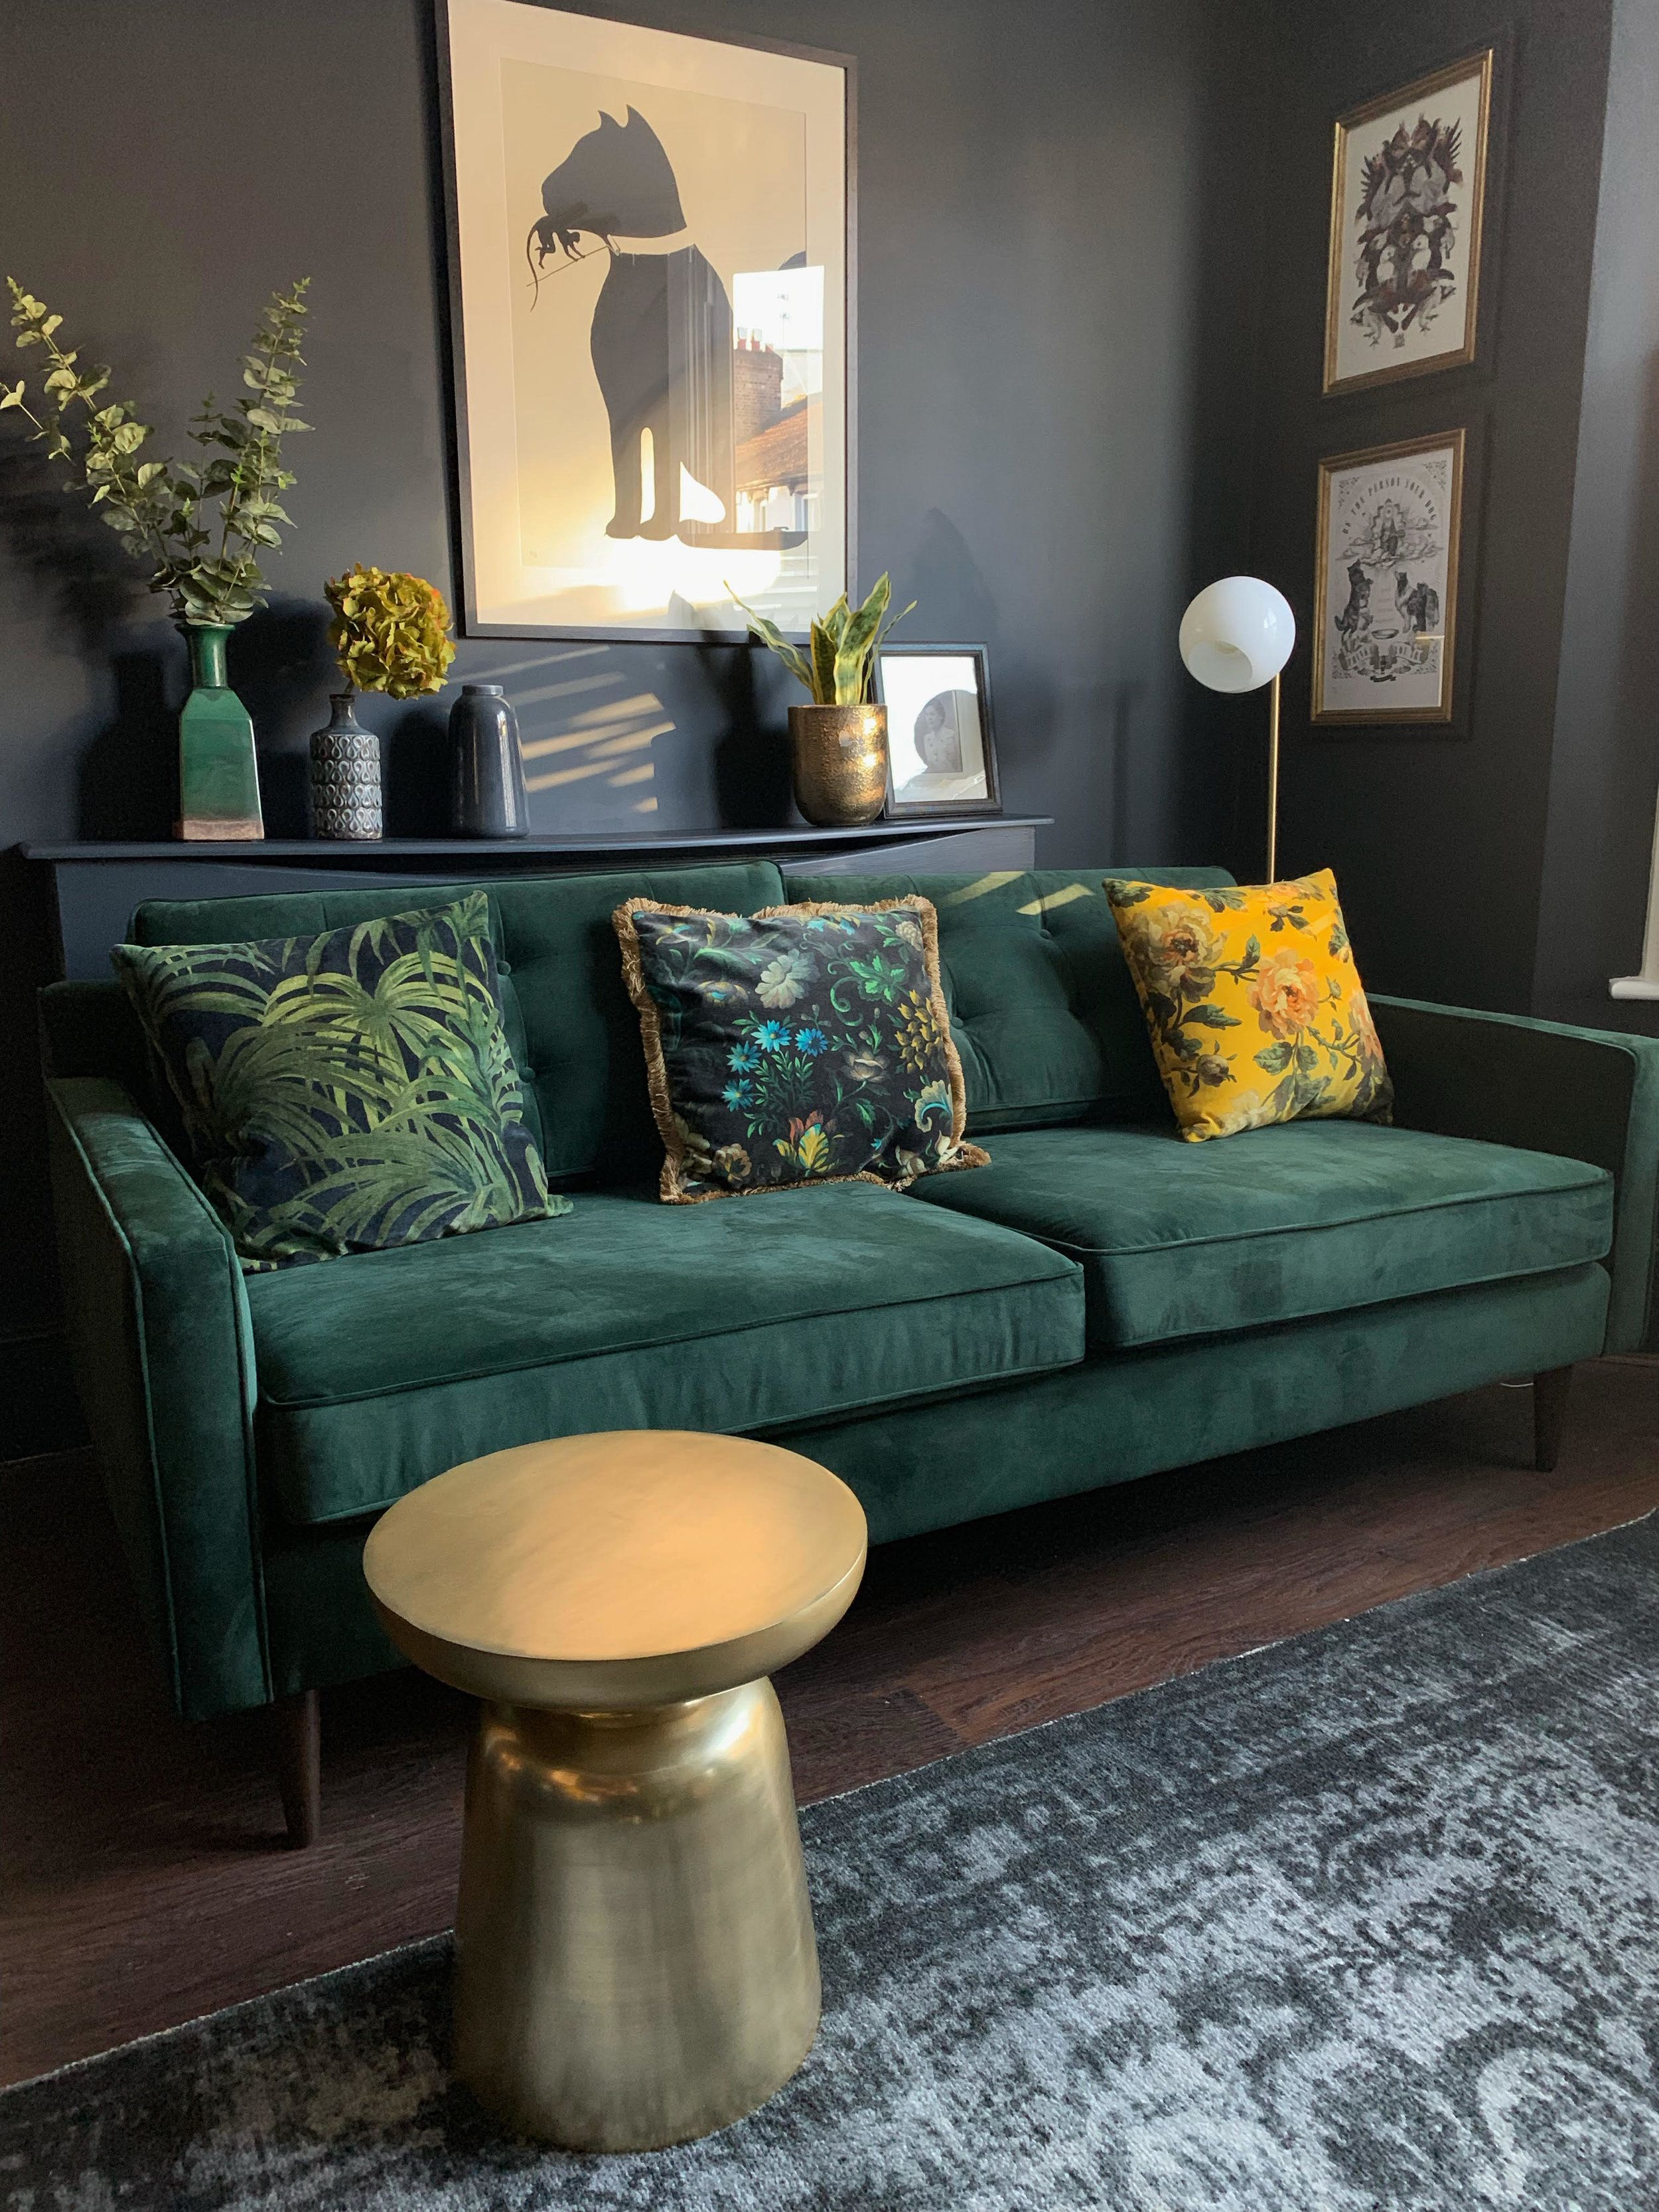 "Photo of Nicola Broughton-""The Girl with the Green Sofa""Blog HomeAmanda Cotton of HouseLust. A Colourful, Victorian Home Renovation"